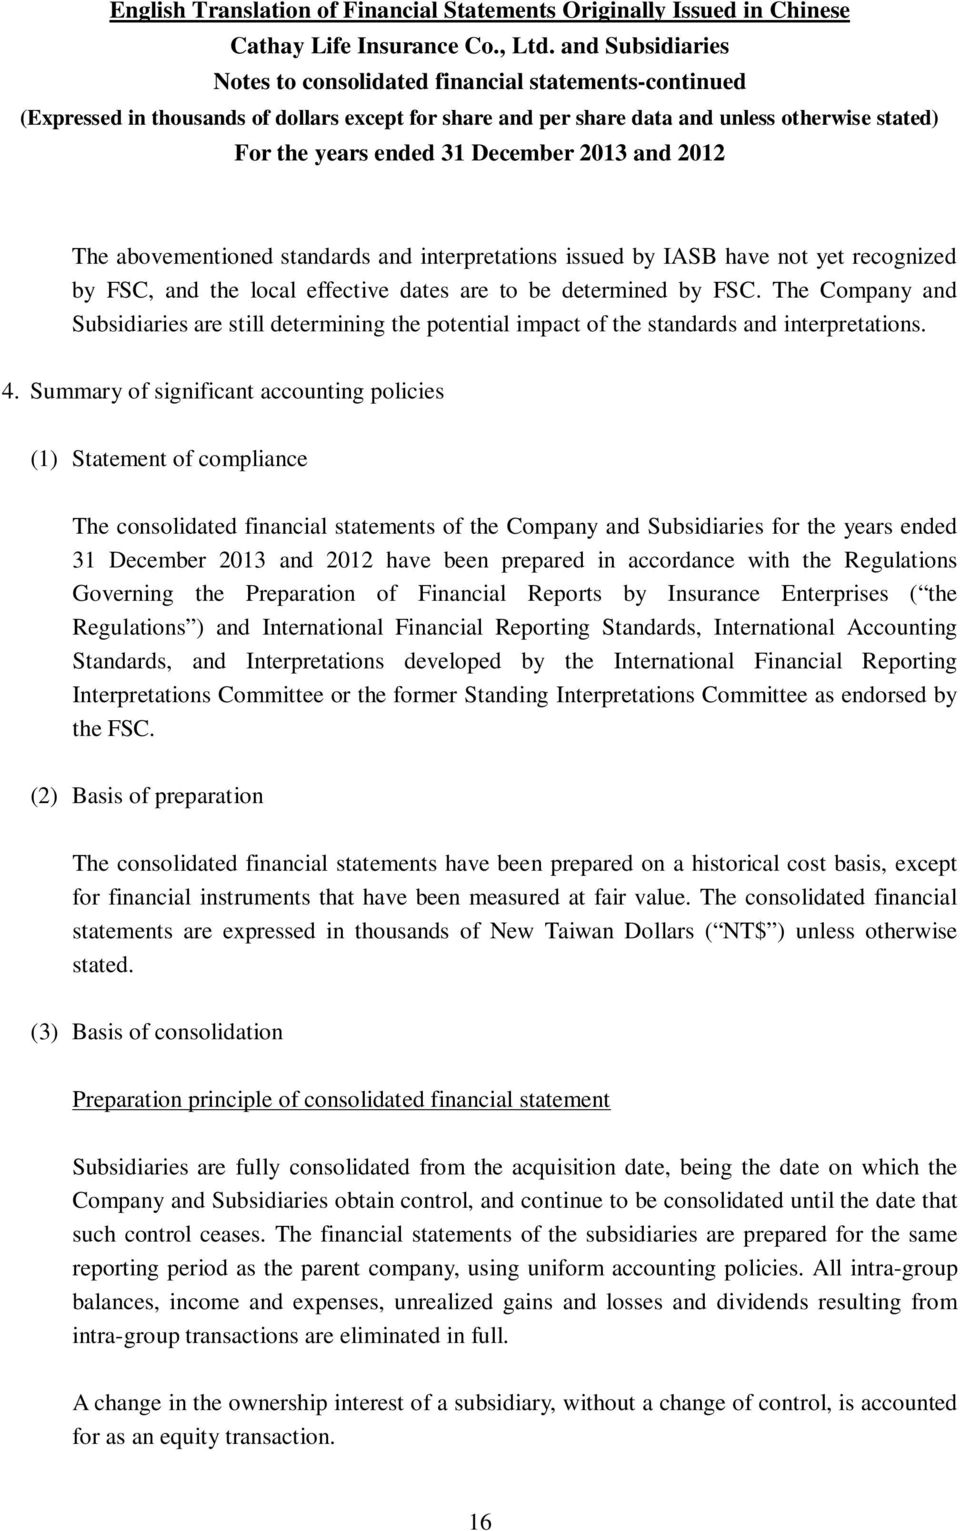 Summary of significant accounting policies (1) Statement of compliance The consolidated financial statements of the Company and Subsidiaries for the years ended 2013 and have been prepared in